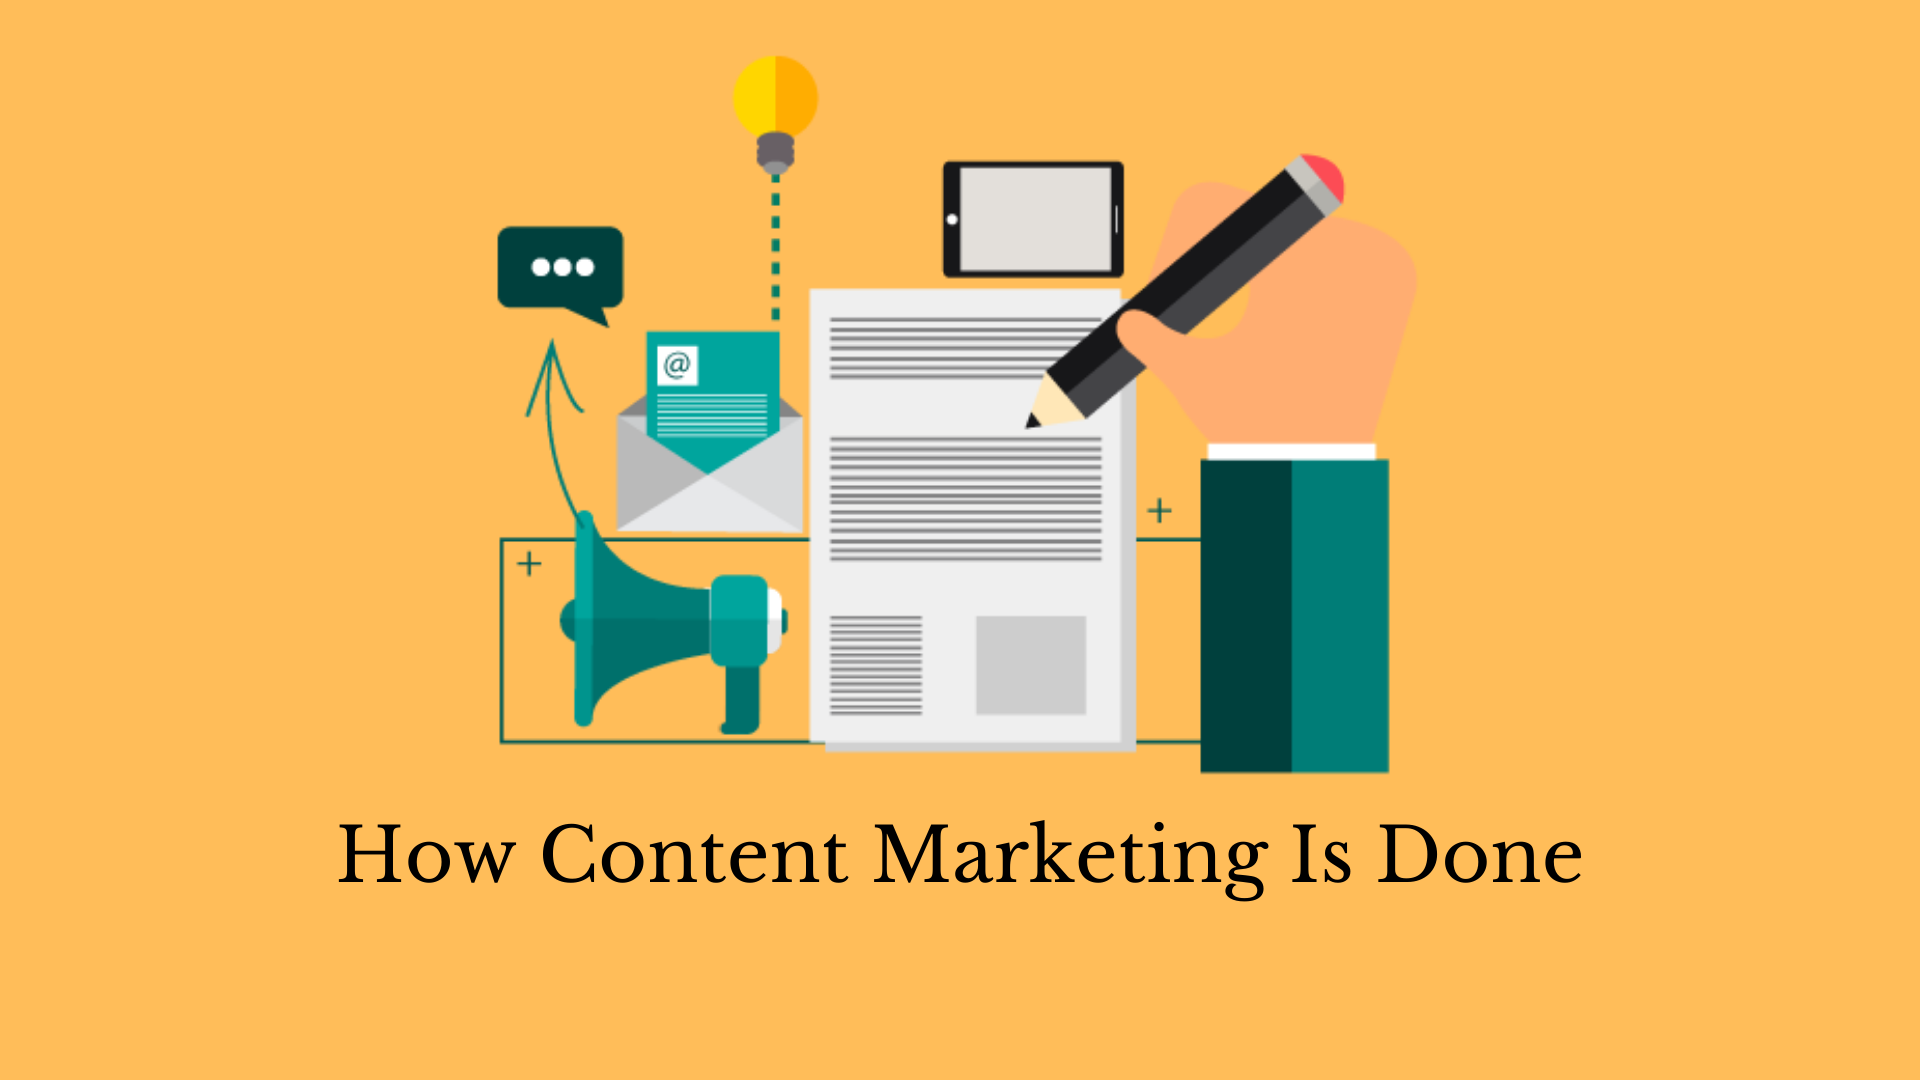 How is Content Marketing done?